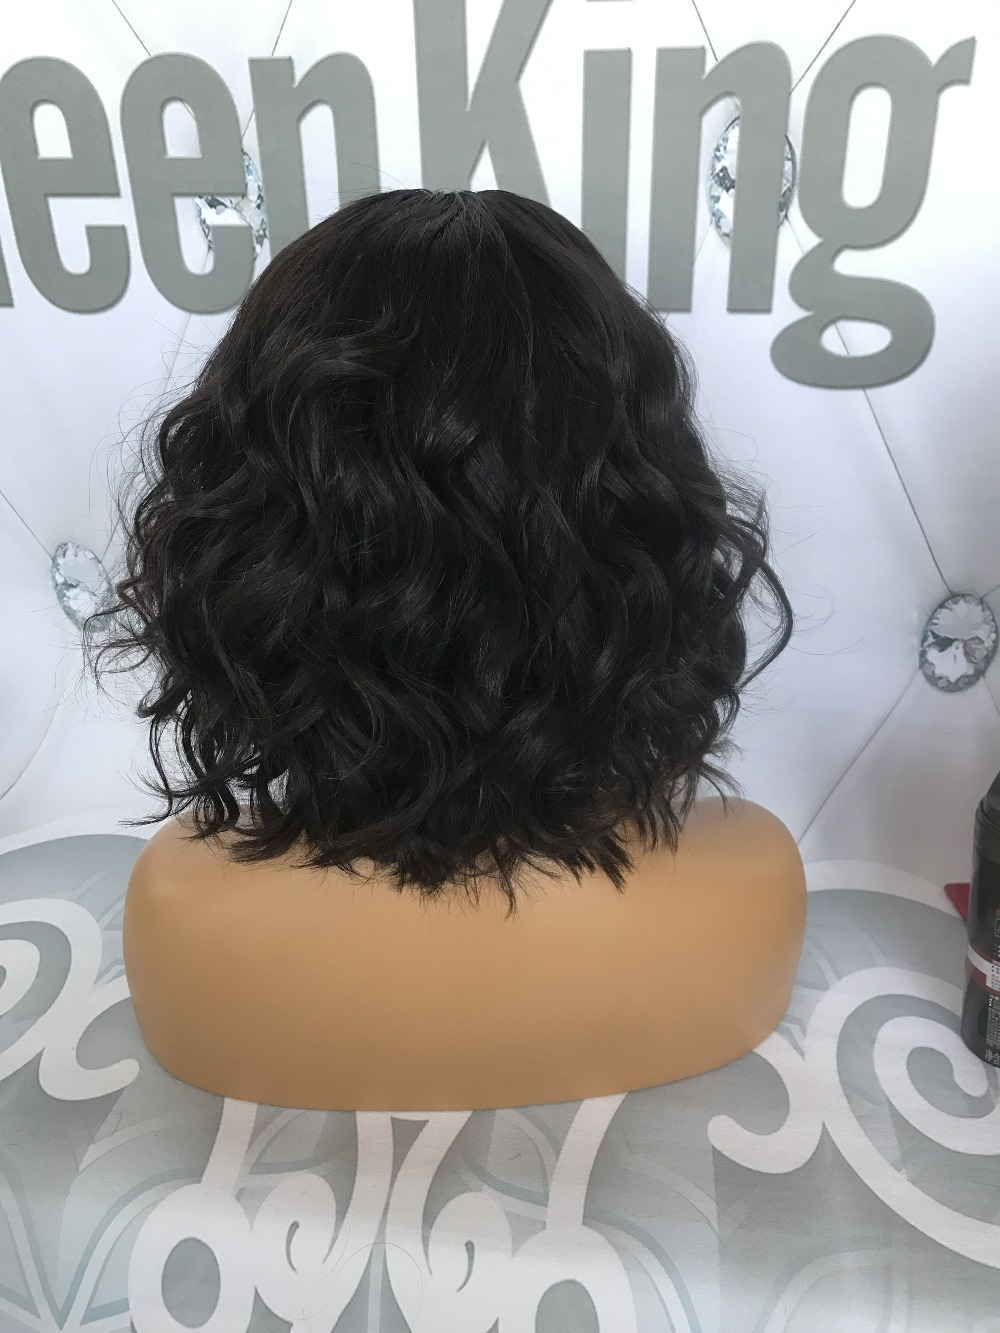 QueenKing hair Human hair Wig 180% Density Bob Wig Full Lace Natural Brazilian Wavy Preplucked Bleached Knots Middle Part